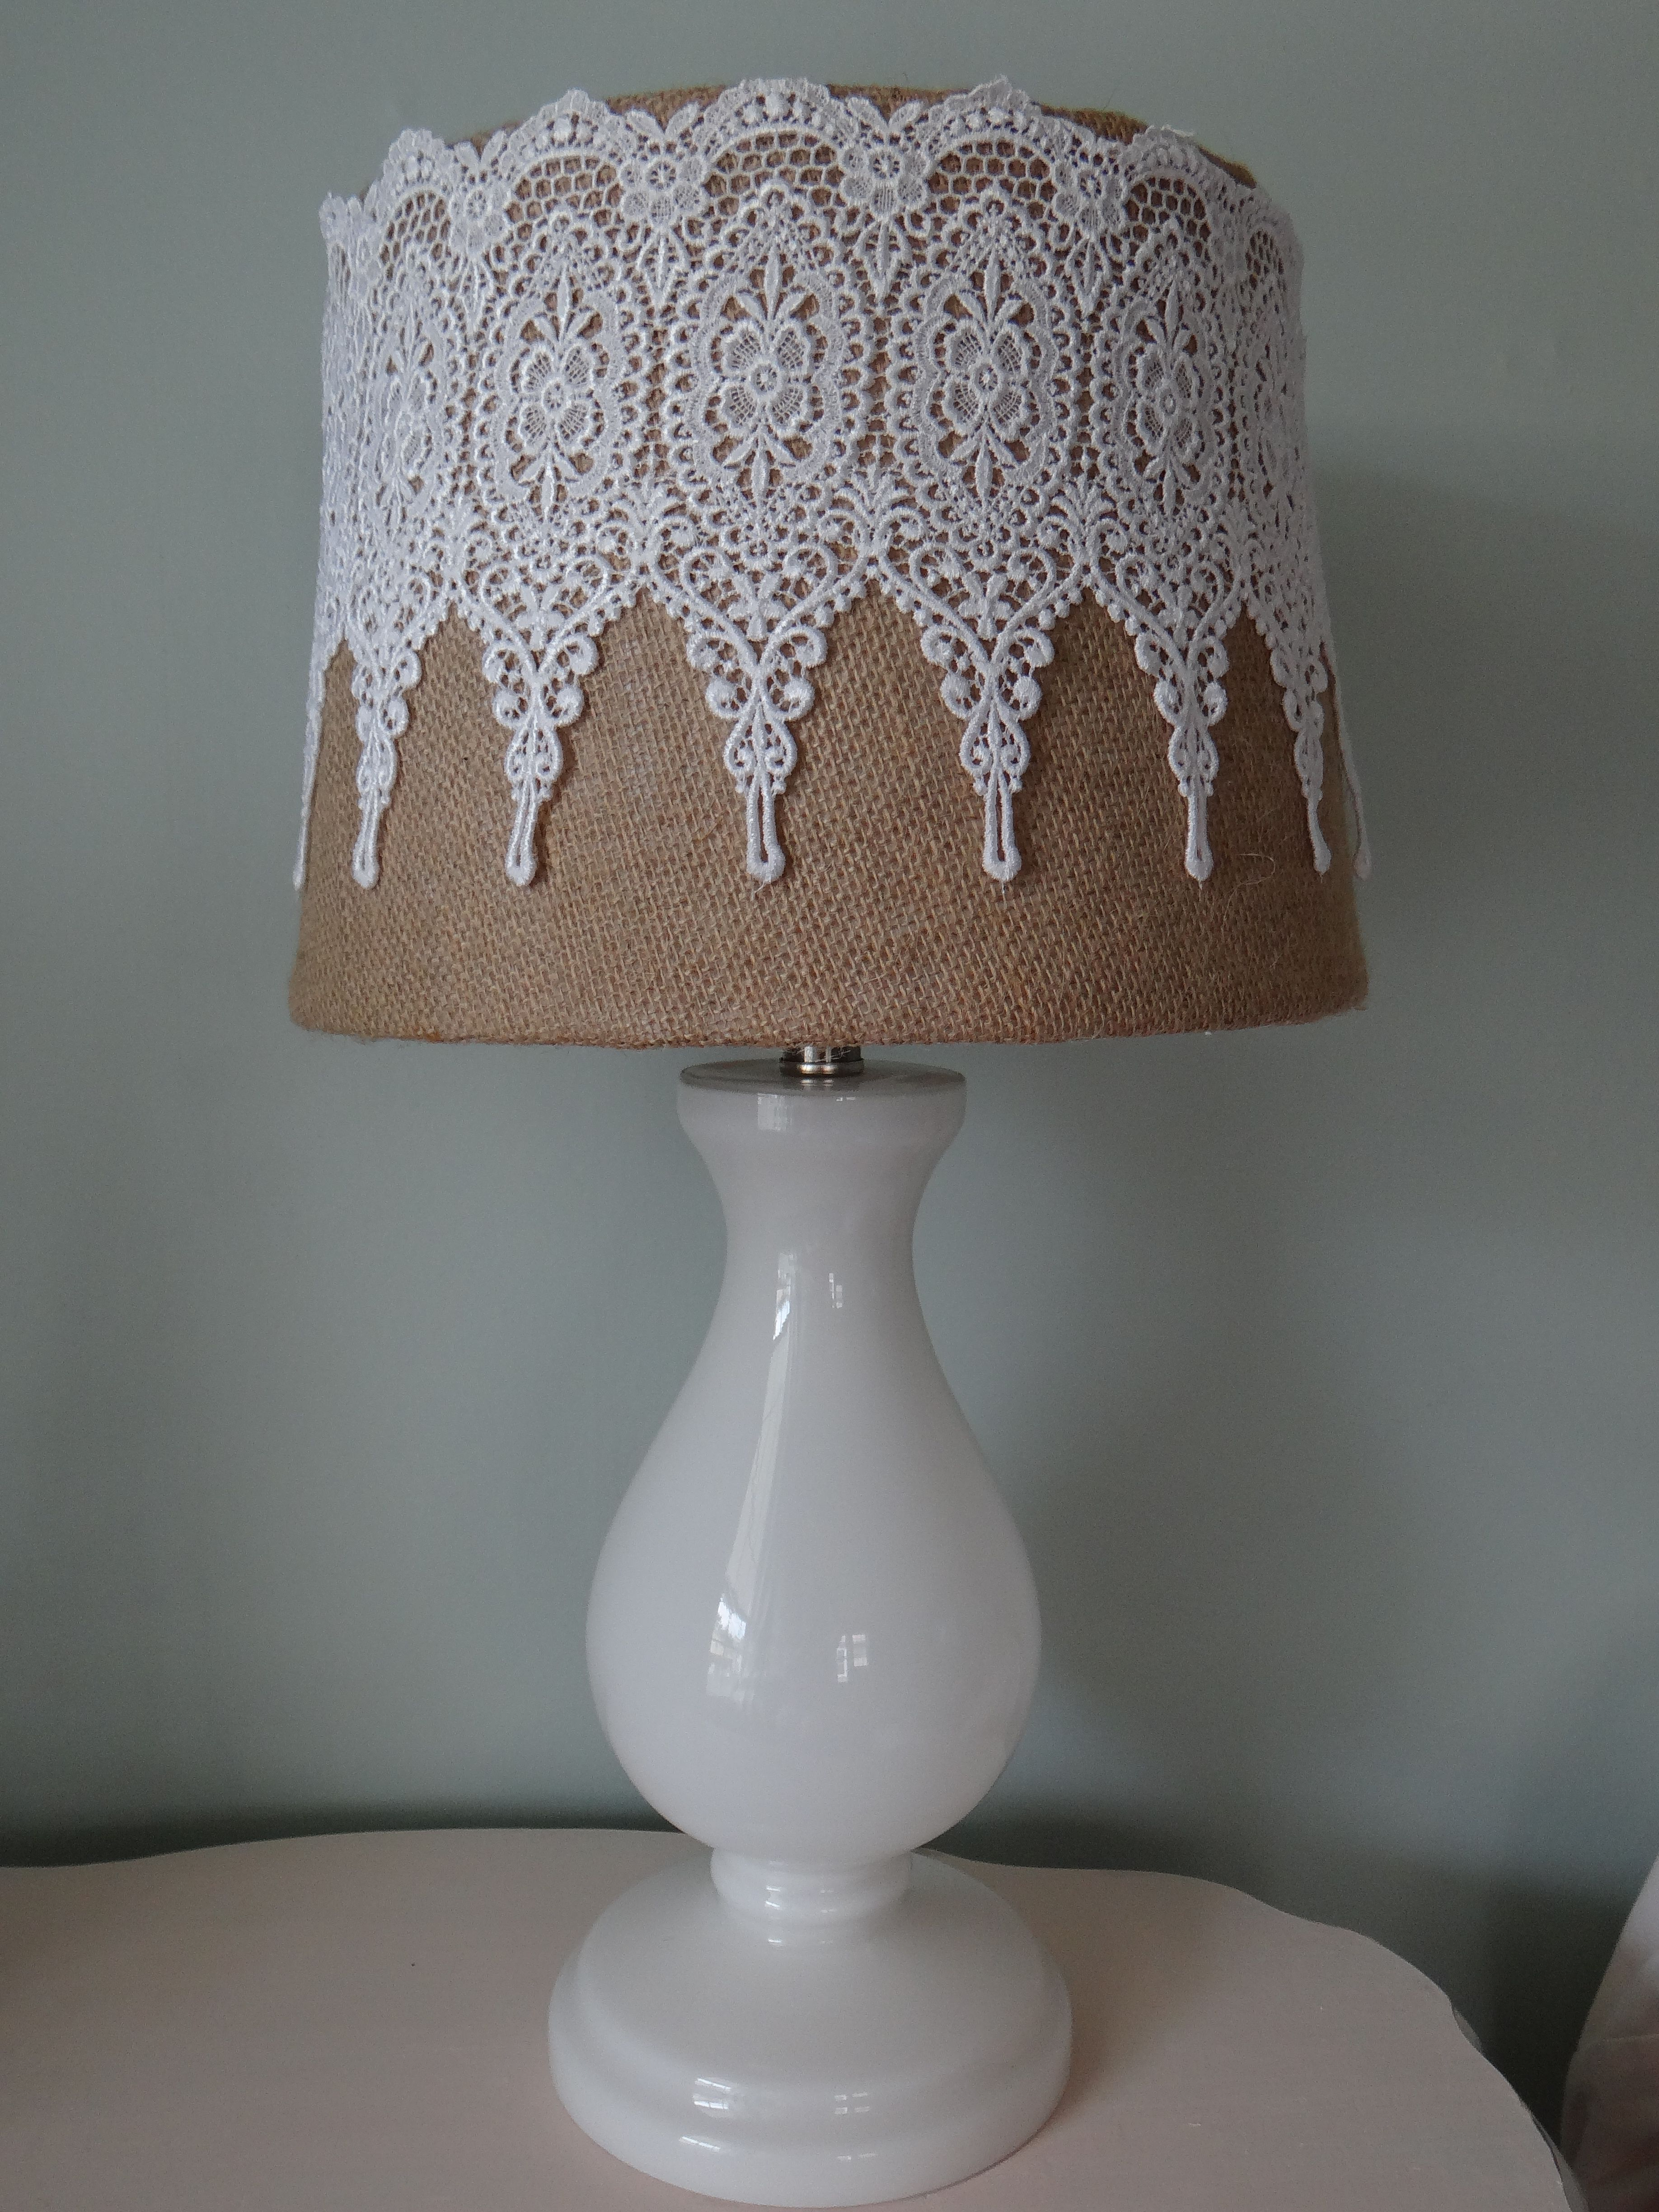 Burlap lace lampshade i made things i made pinterest for Burlap lights